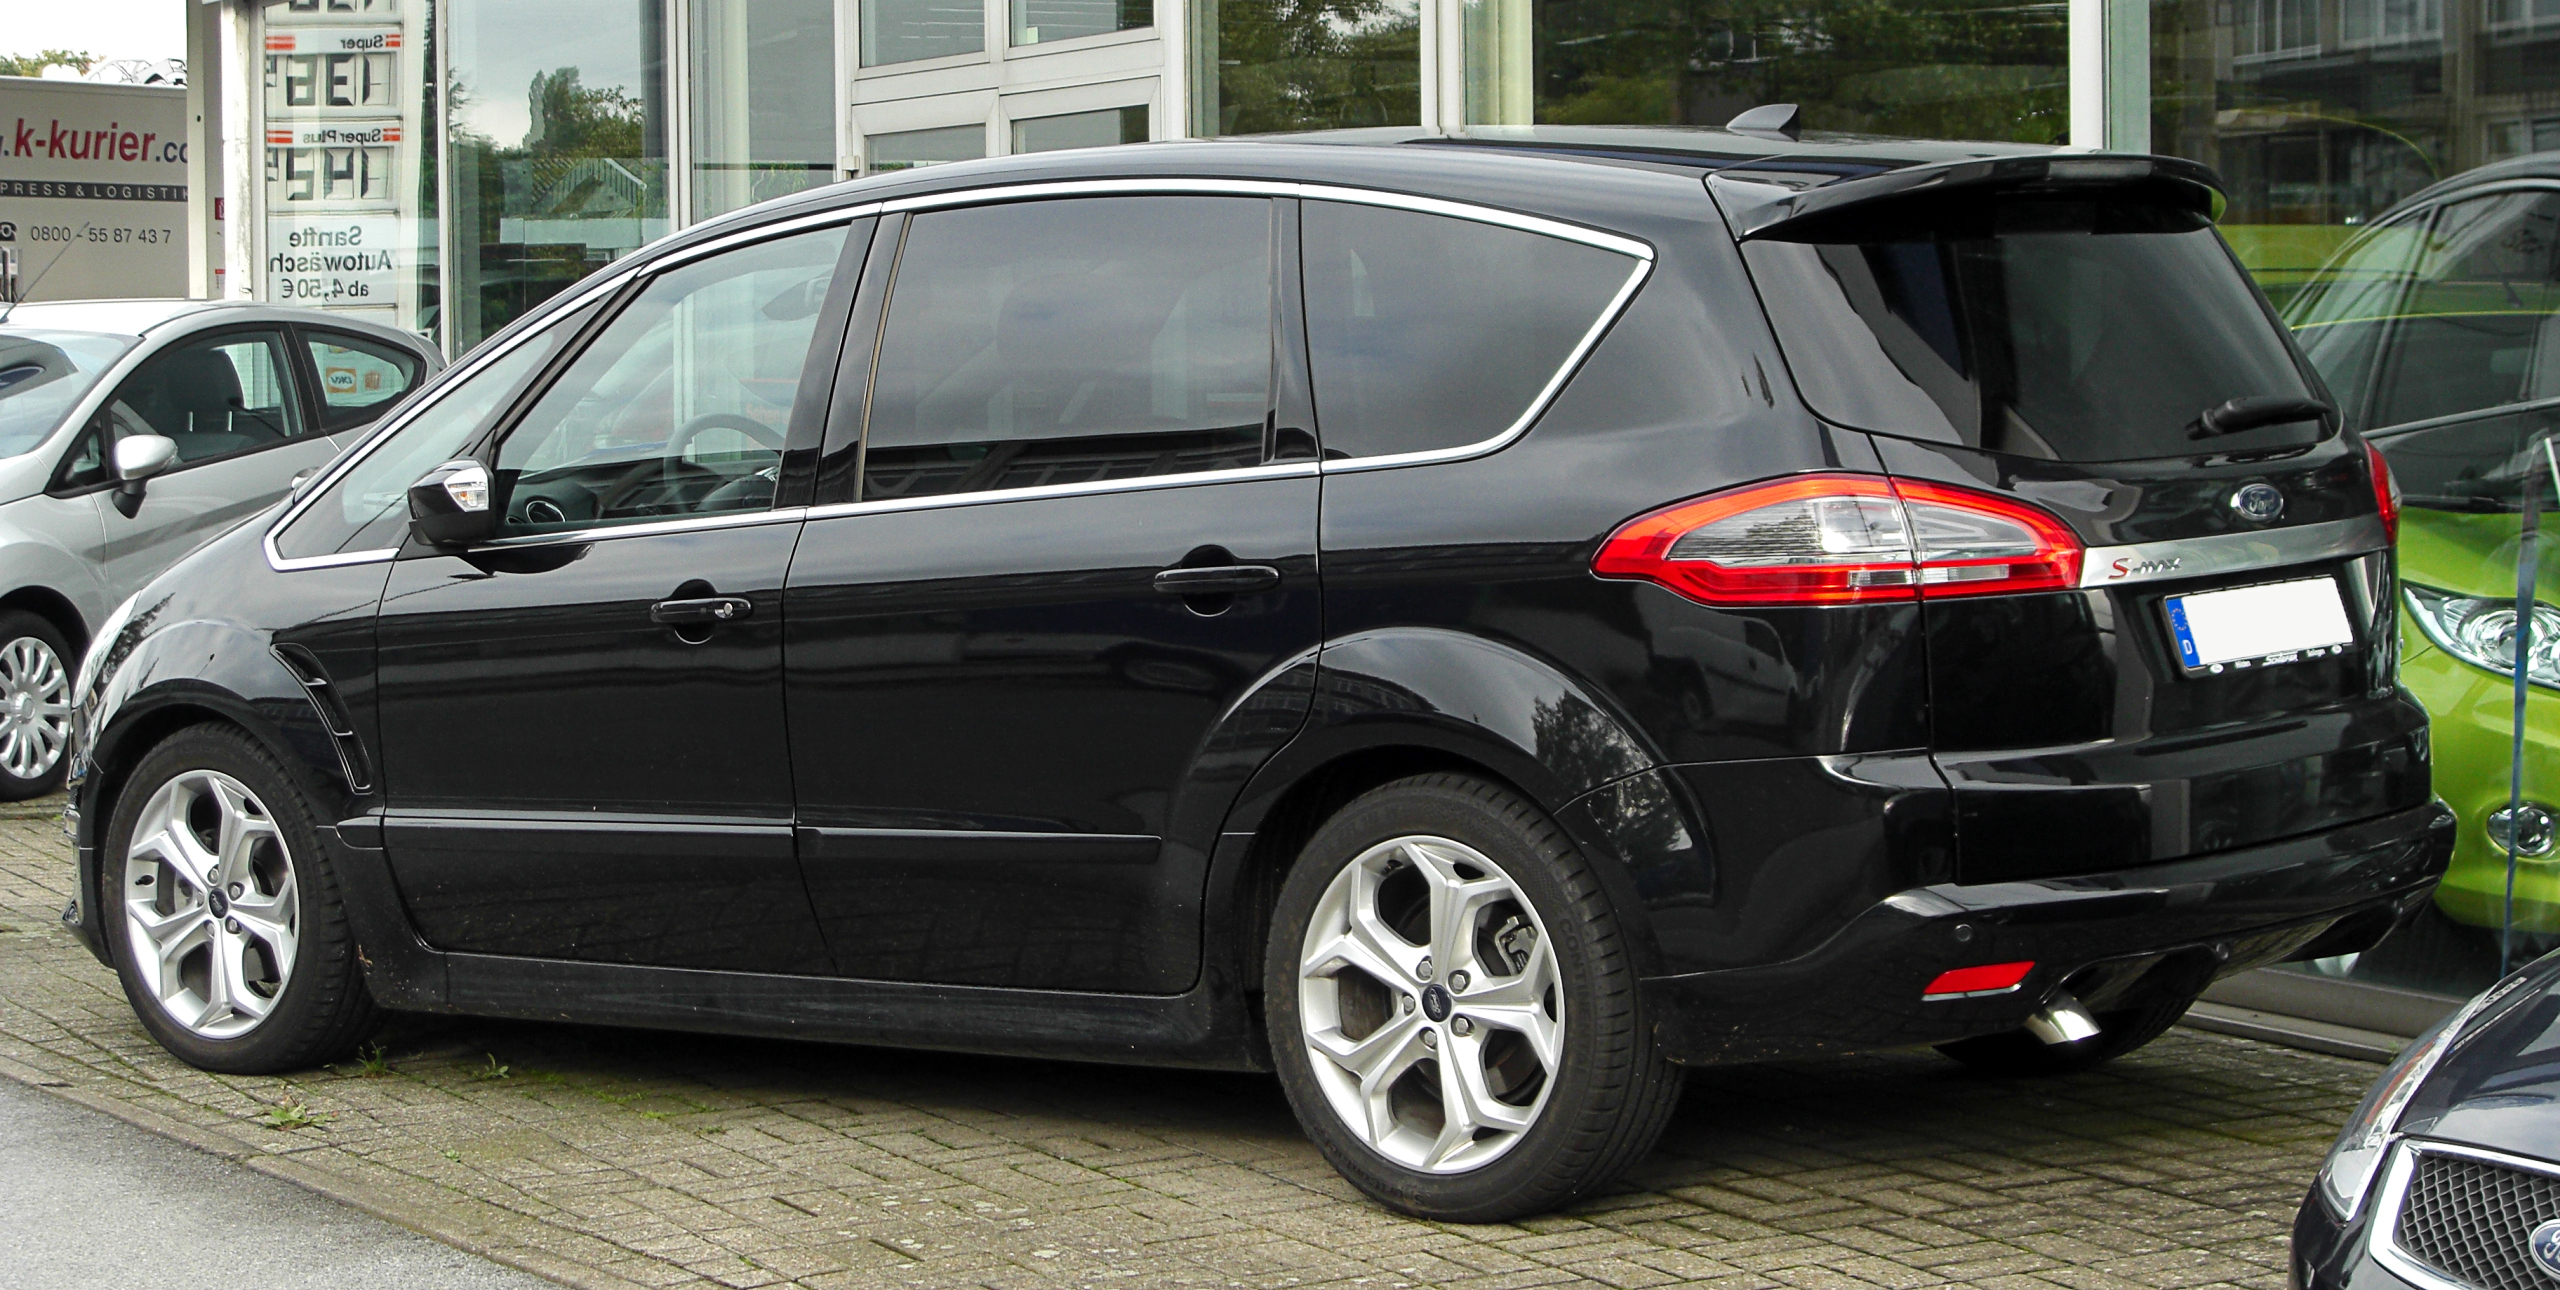 ford s-max 2.0 tdci-pic. 2